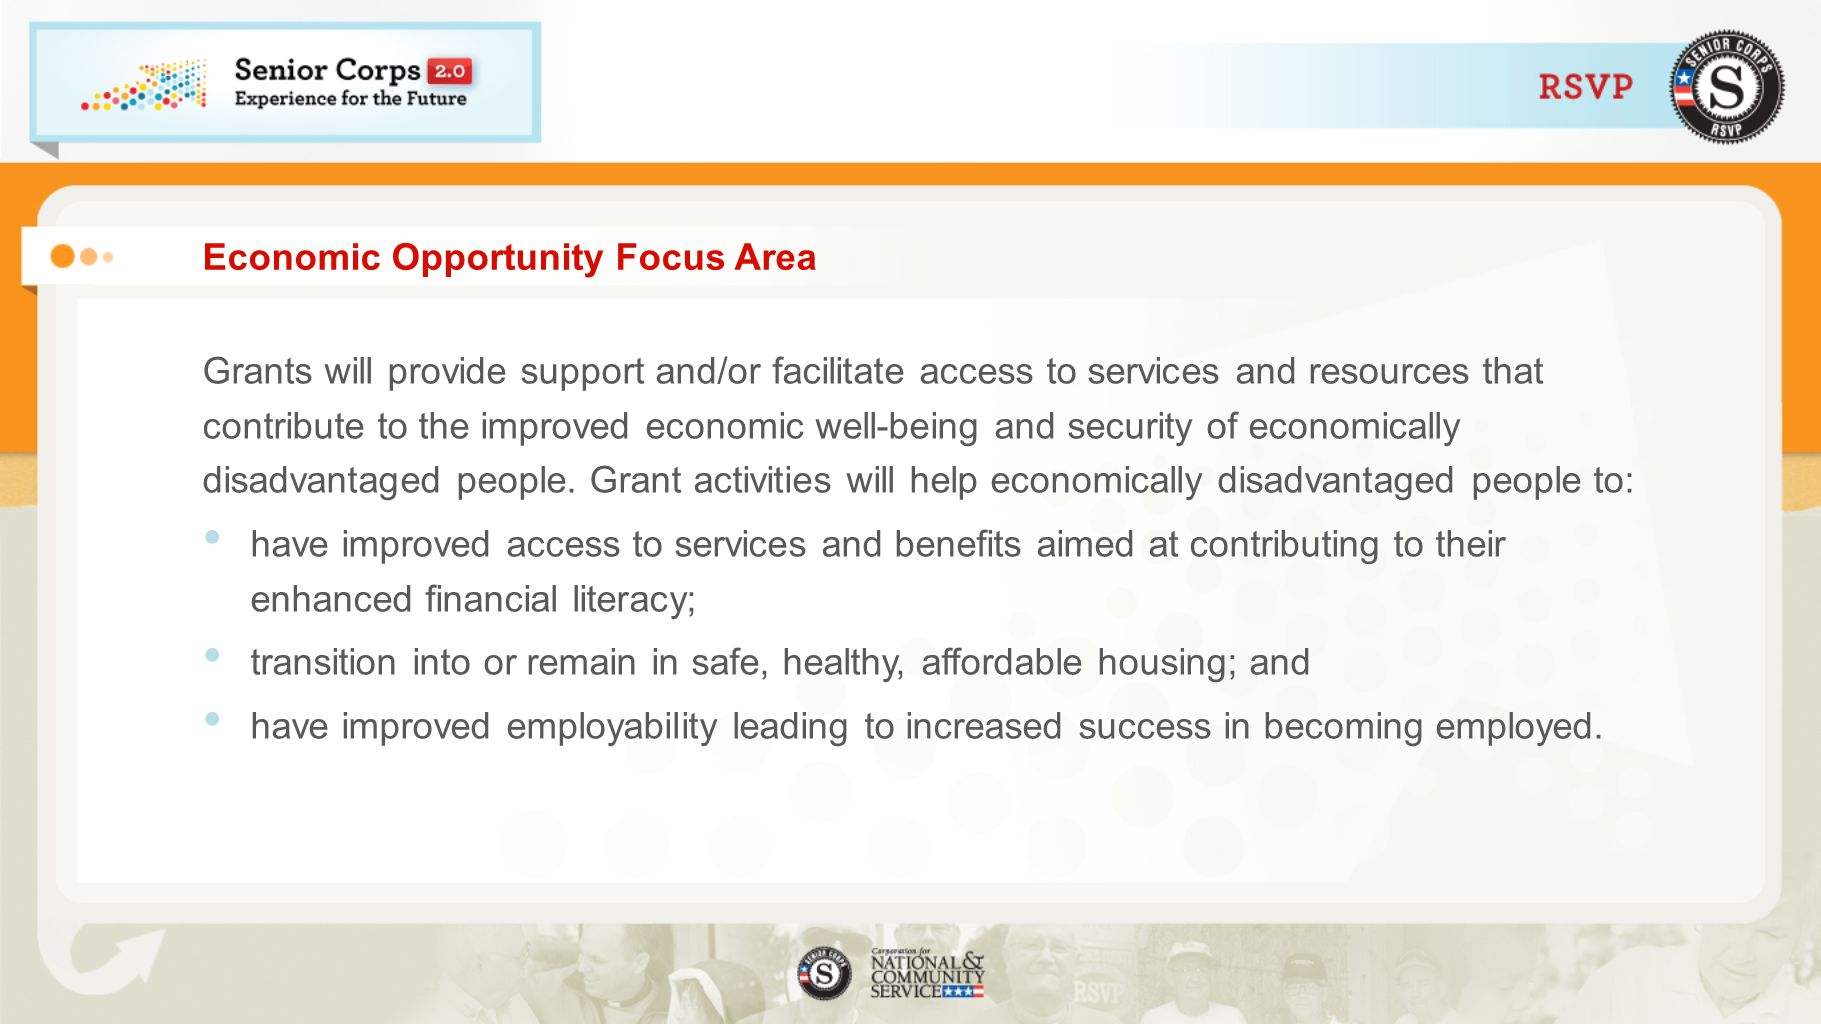 Economic Opportunity Focus Area Grants will provide support and/or facilitate access to services and resources that contribute to the improved economic well-being and security of economically disadvantaged people.